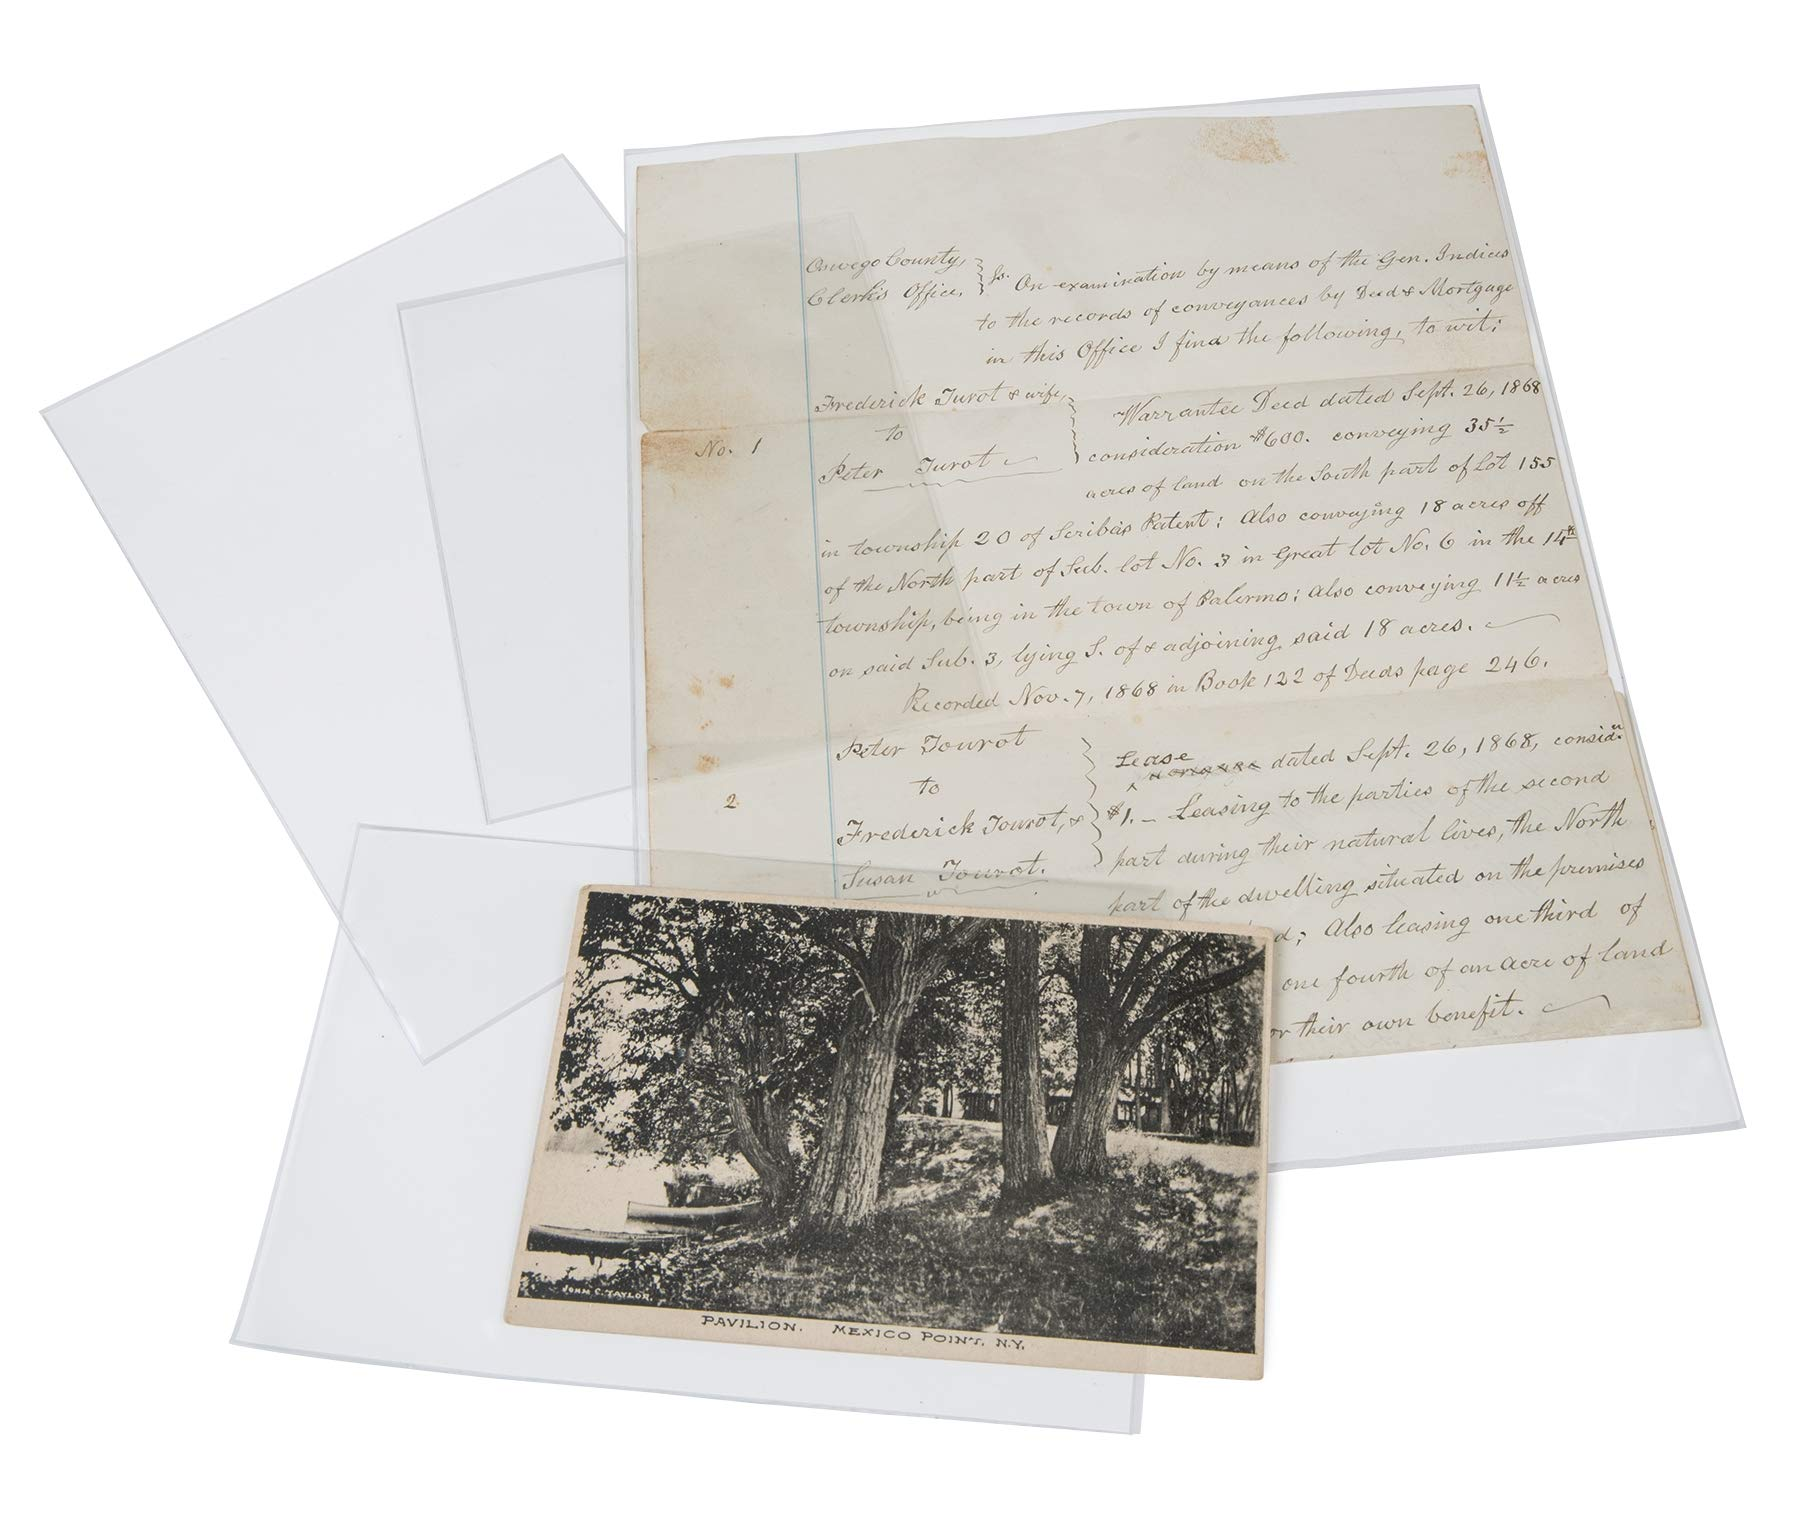 Gaylord Archival Polypropylene Preservation Sleeves Variety Pack by Gaylord Archival